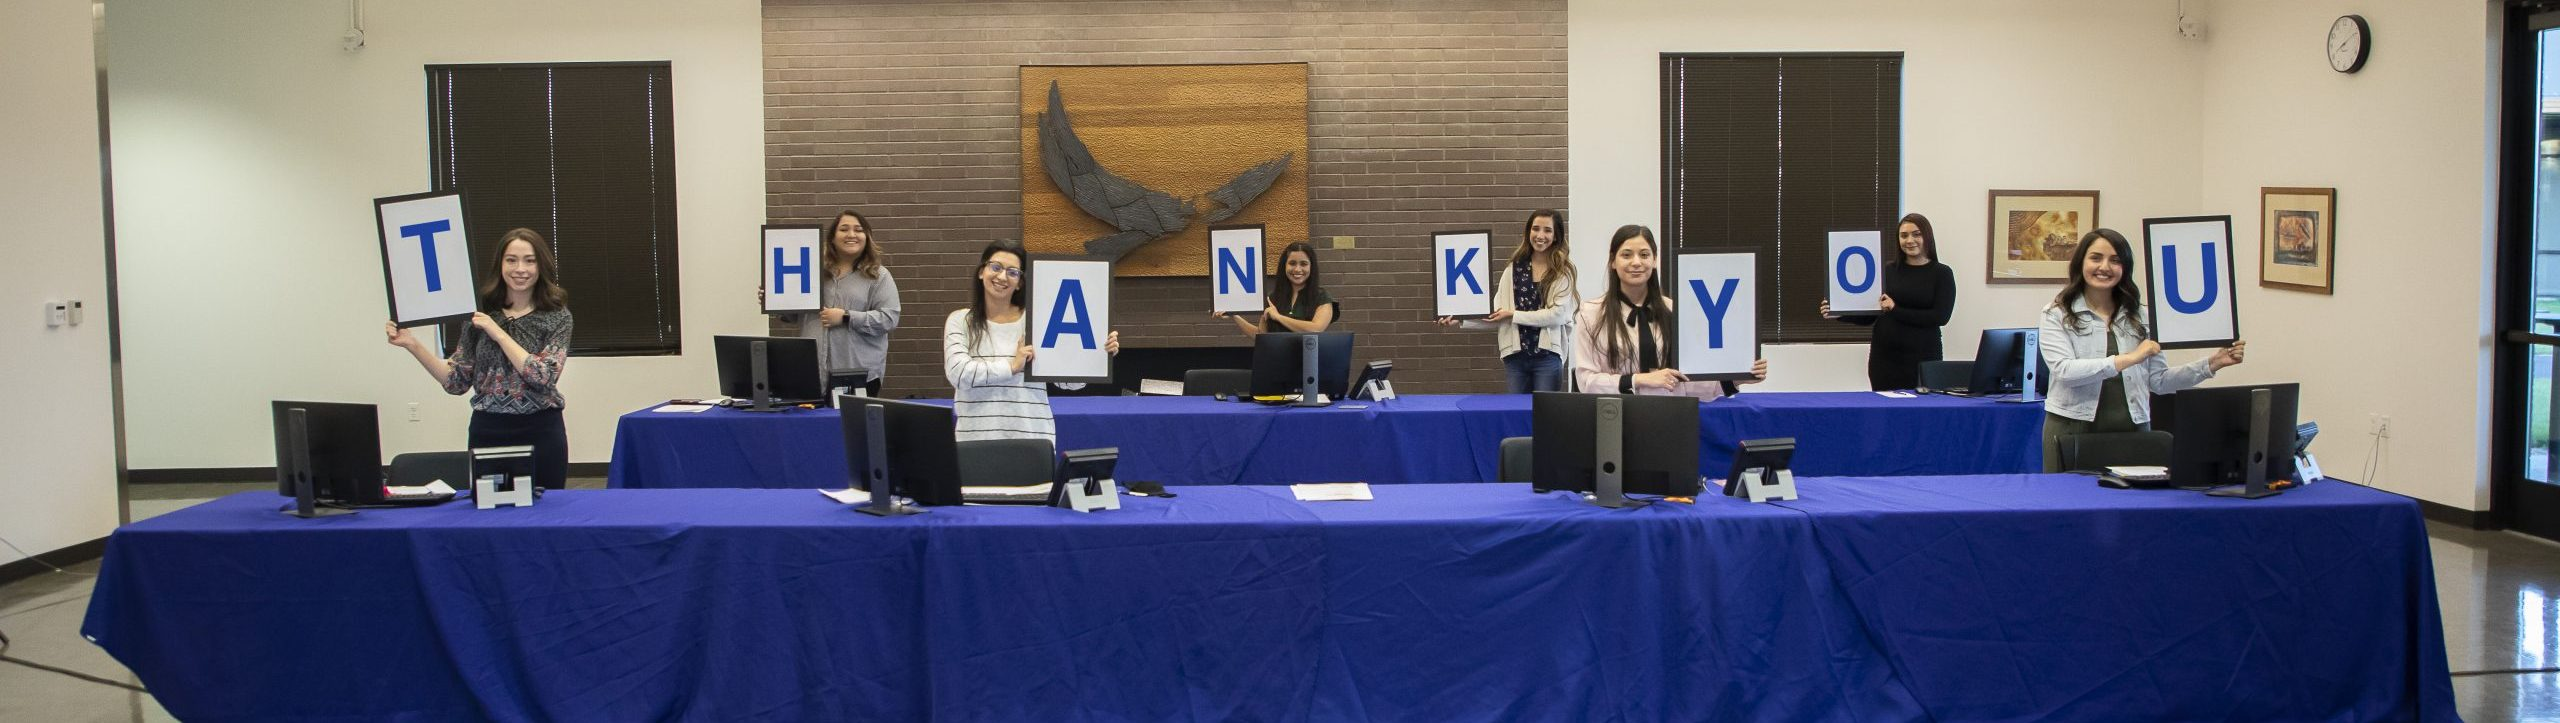 Student phone operators holding Thank You Sign